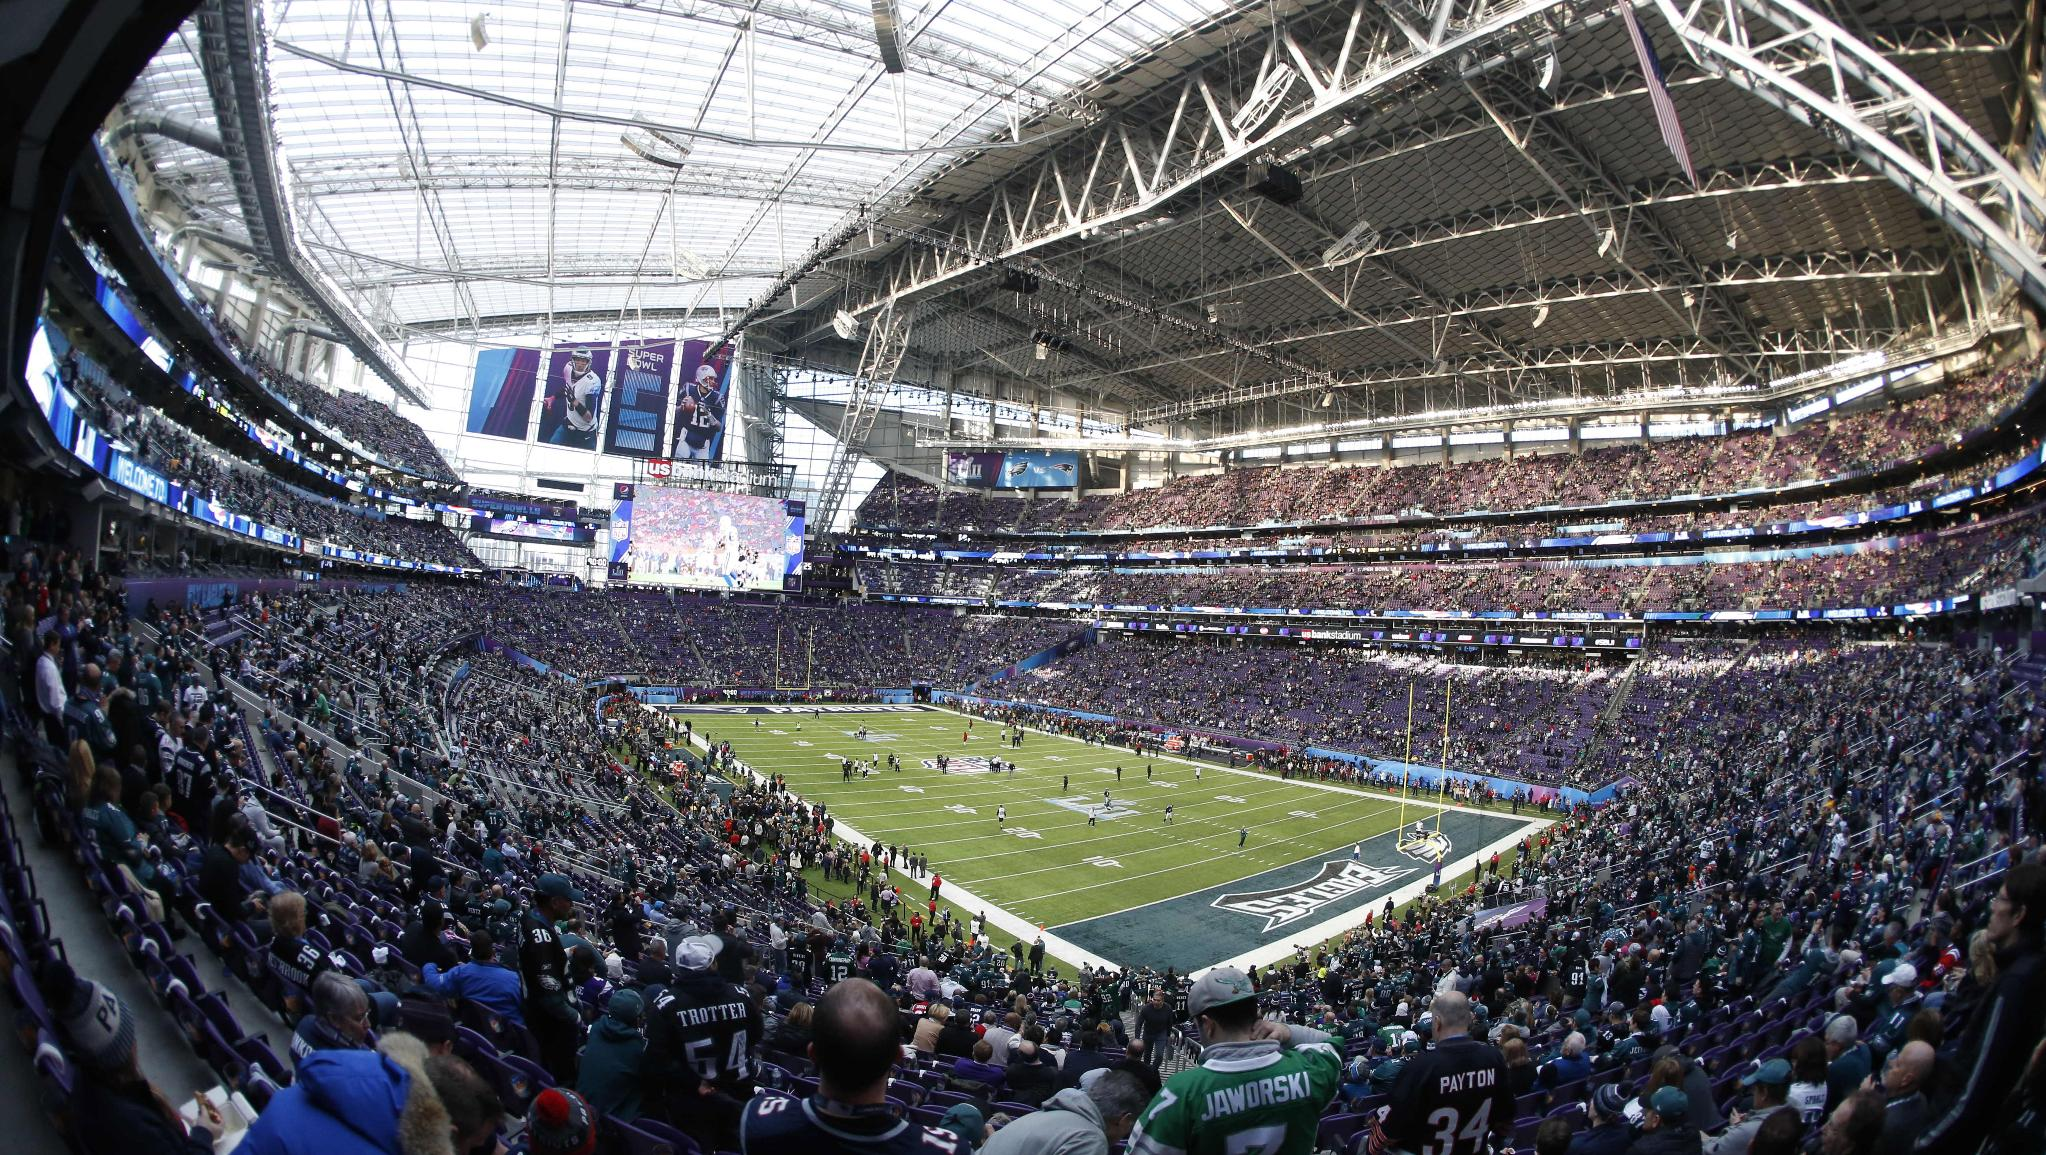 .@usbankstadium and the state of Minnesota received rave reviews for hosting #SBLII.   ��: https://t.co/uOaKyZffc1 https://t.co/2yF8pQ4UbI